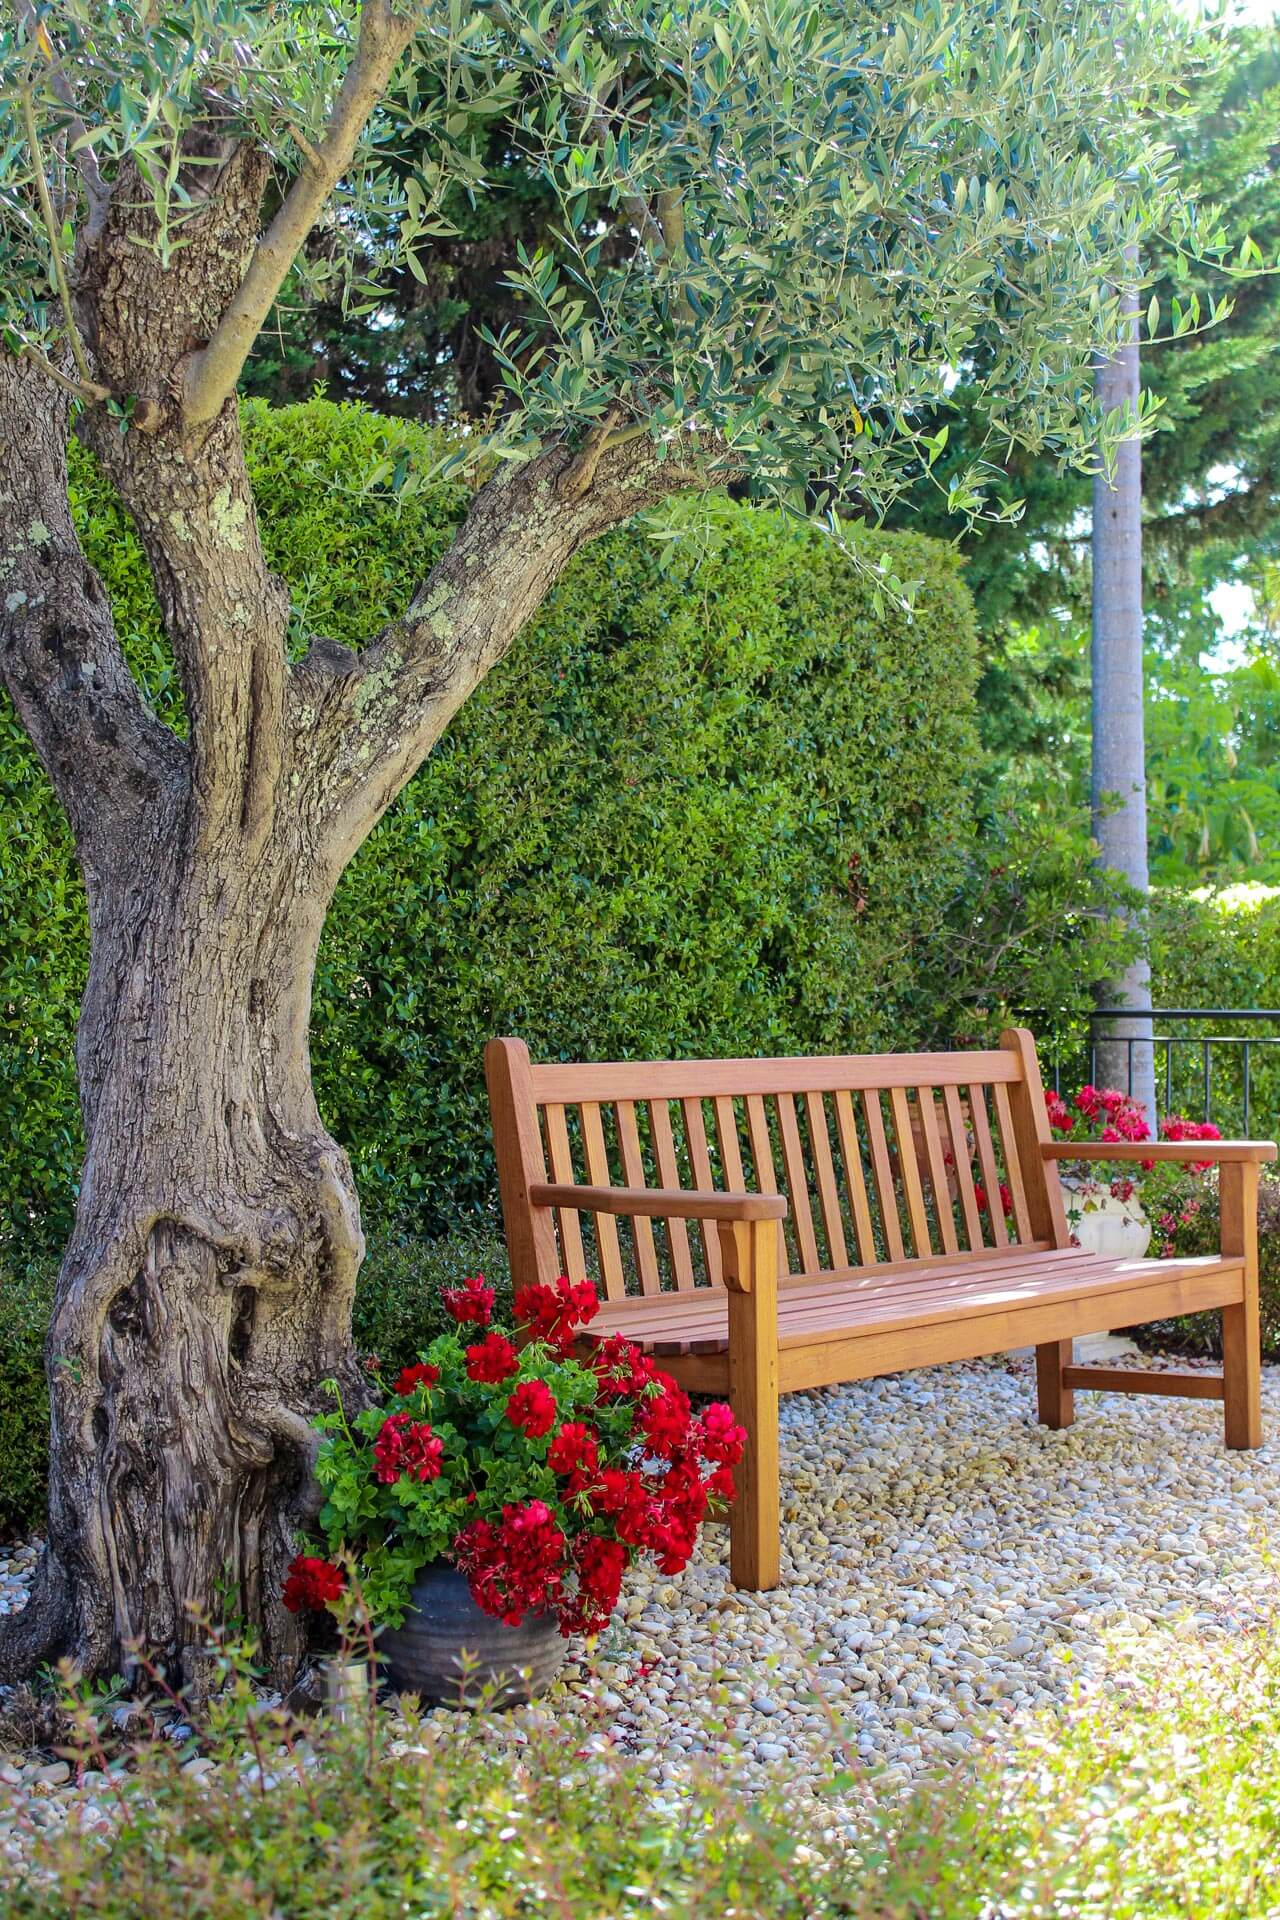 Meditteranean style garden bench under olive tree